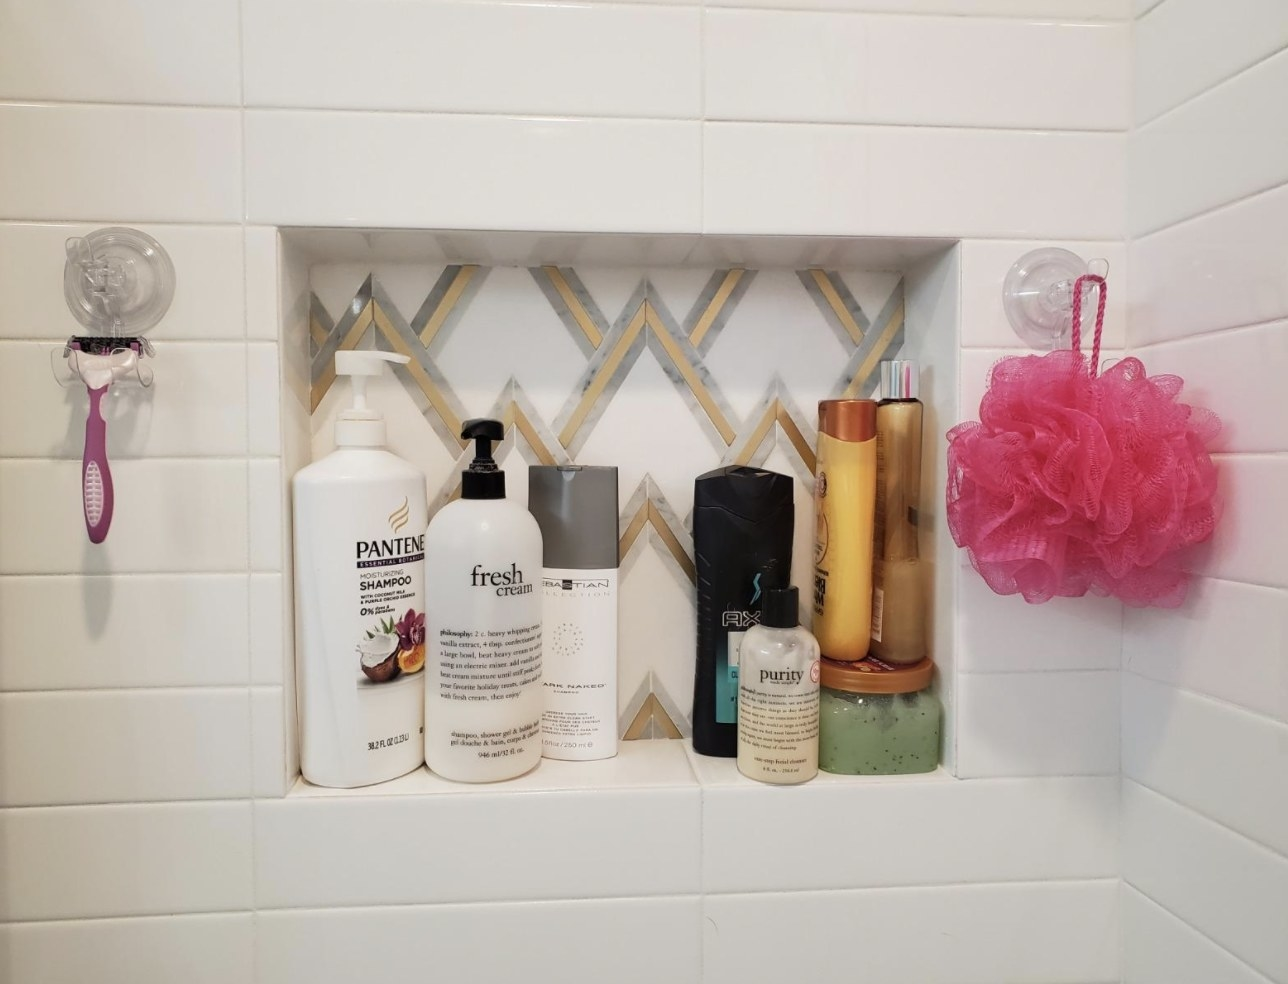 The suctions on a bathroom wall